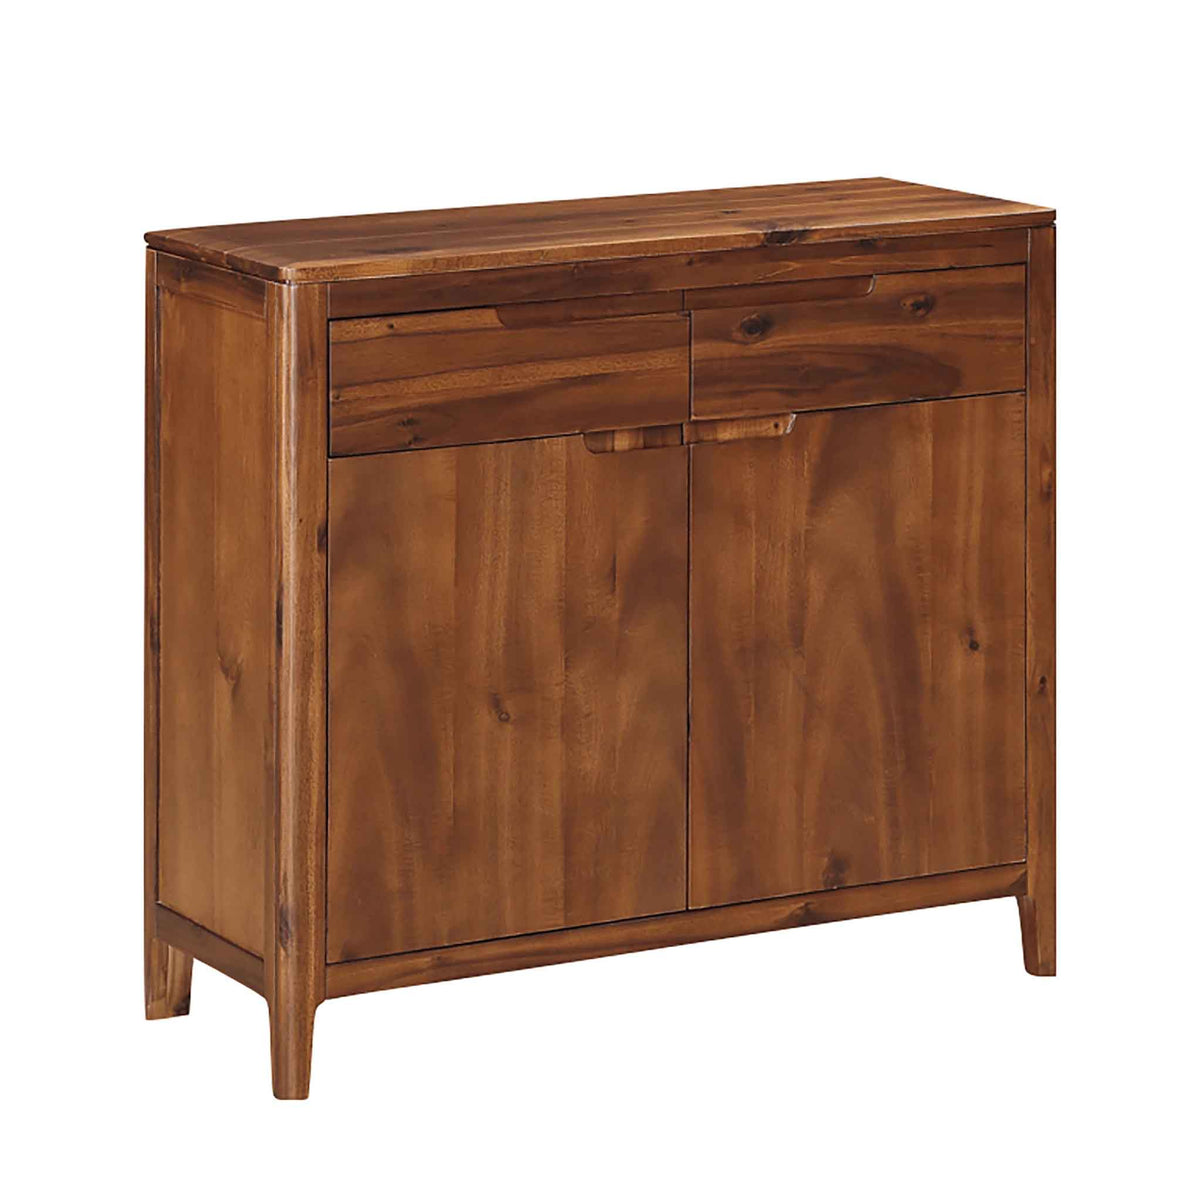 The Dunmore Acacia Small 2 Door Sideboard Cabinet with 2 Drawers from Roseland Furniture